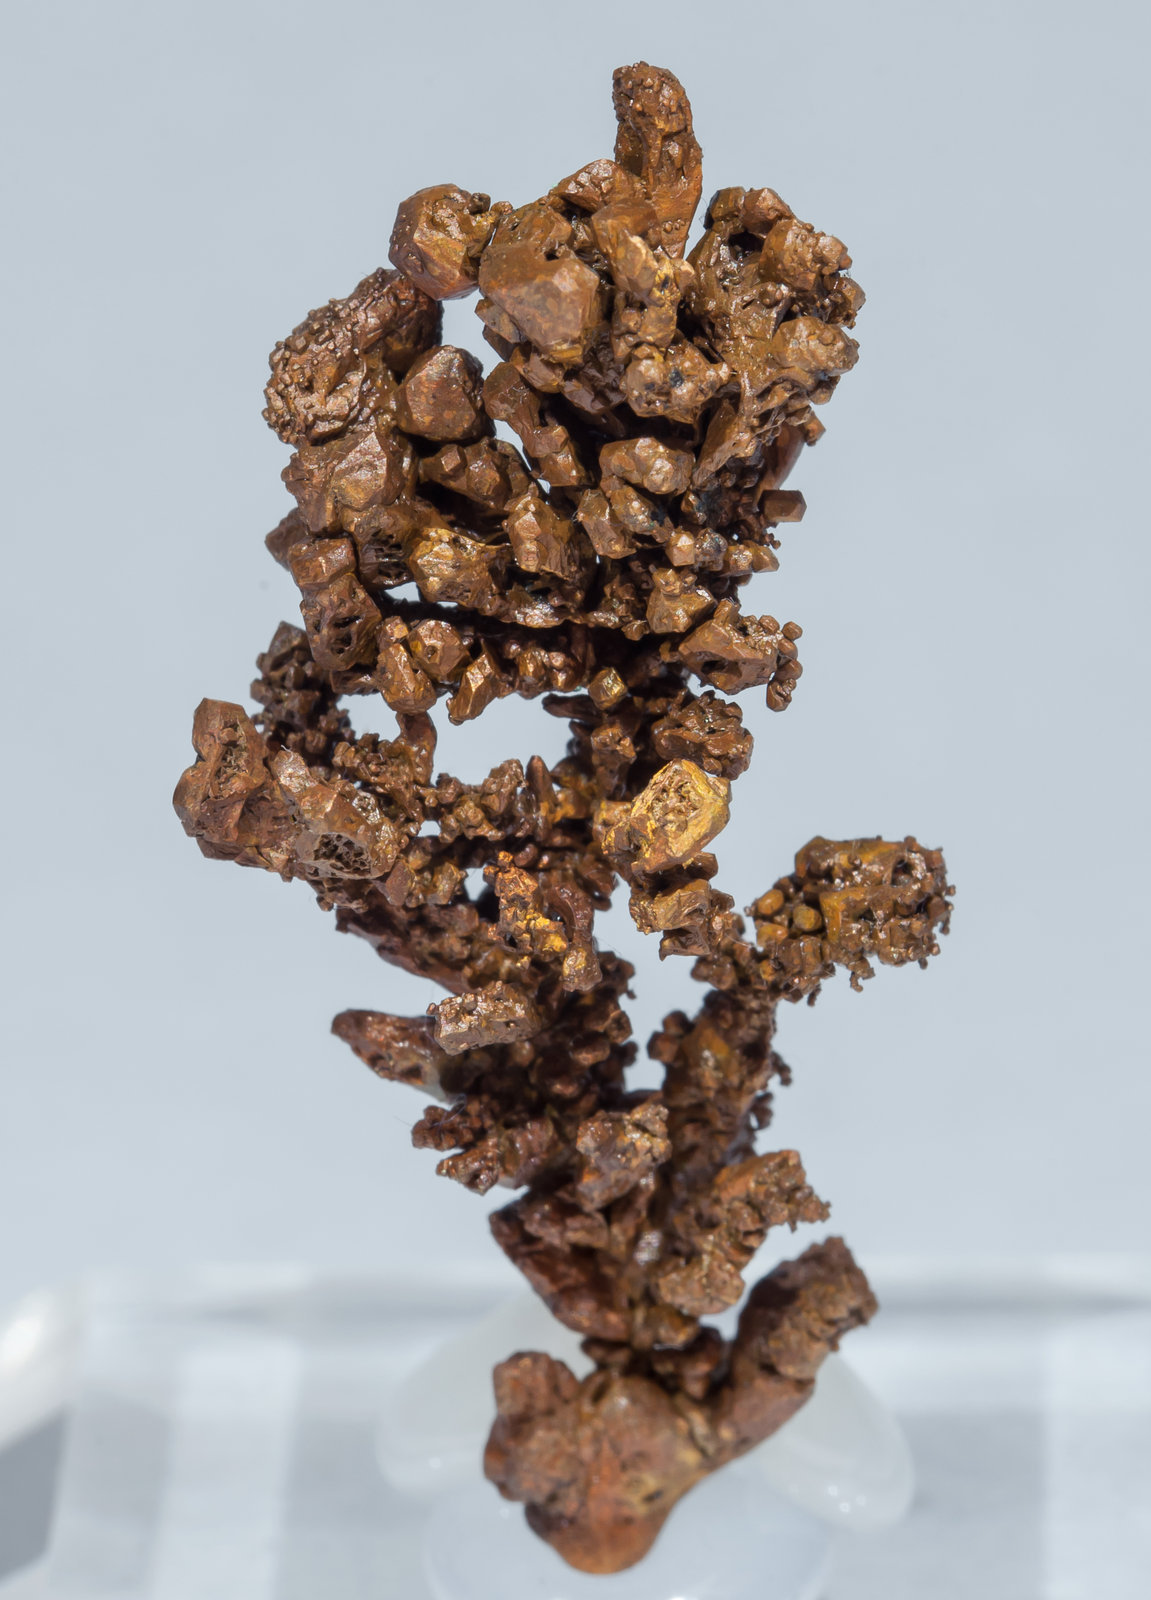 specimens/s_imagesAH7/Copper-TJ13AH7f.jpg